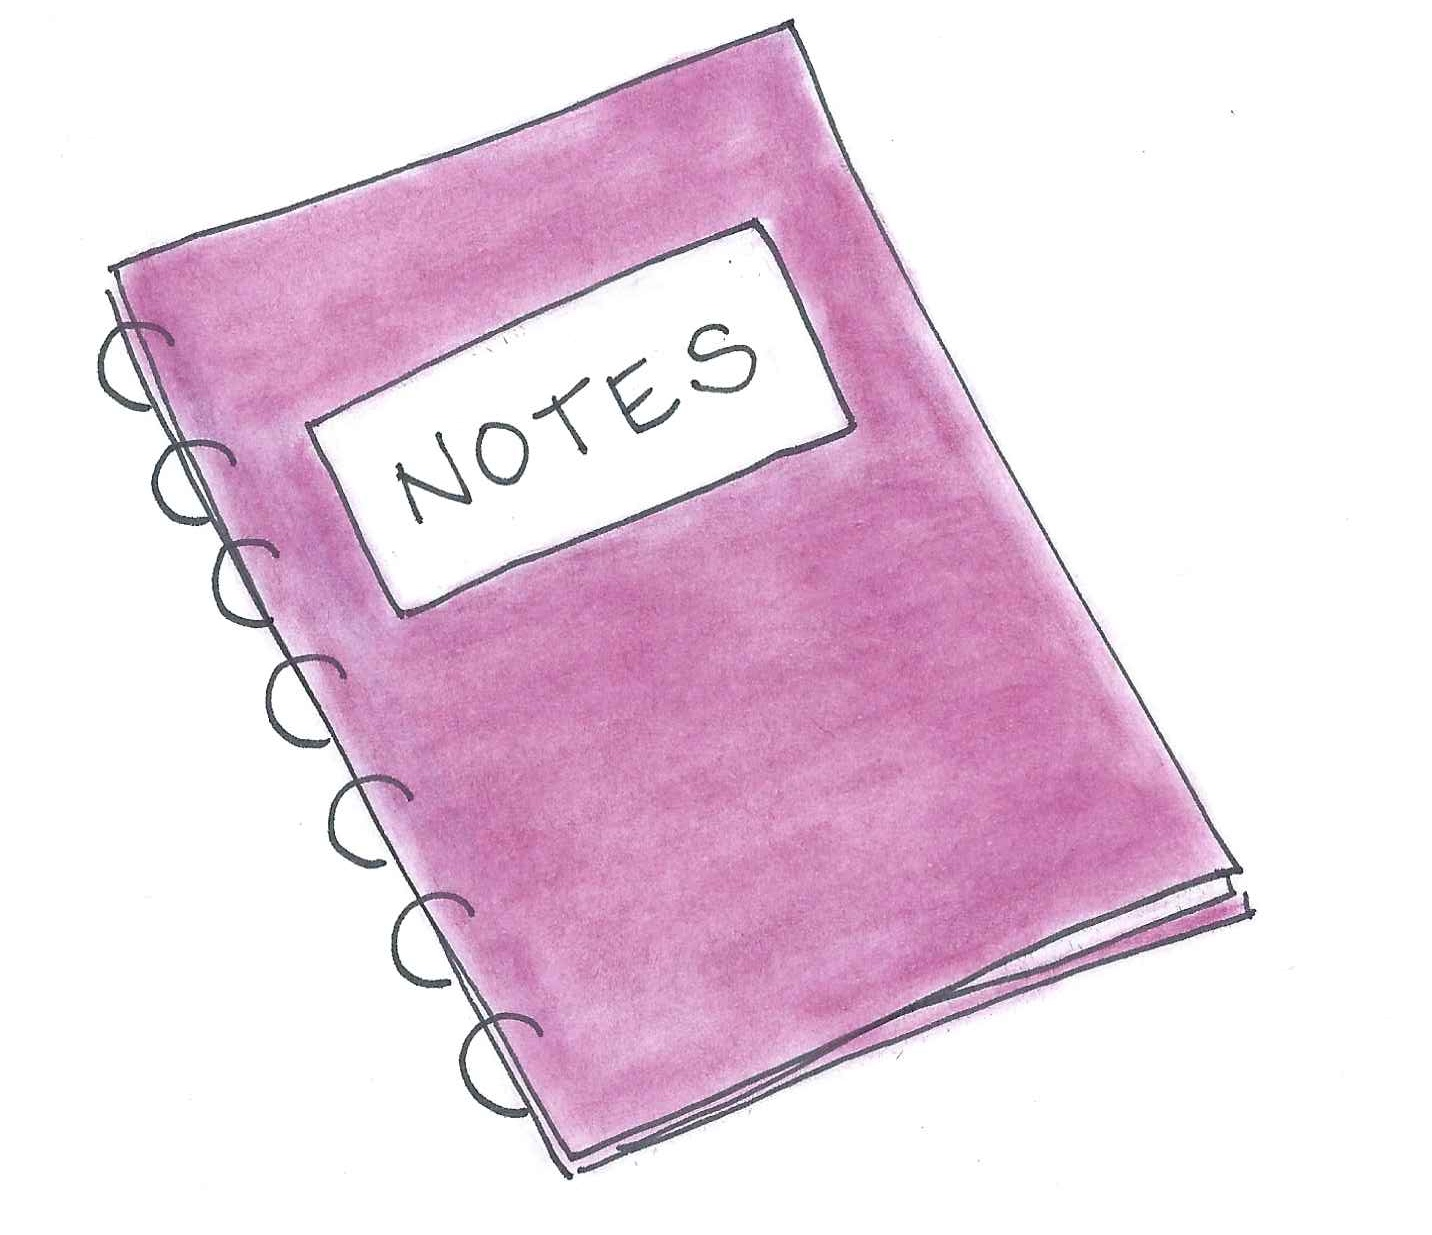 Graphic Recording - NotebookCaryn Sterling | Drawing Insight | Graphic Recording & Illustration